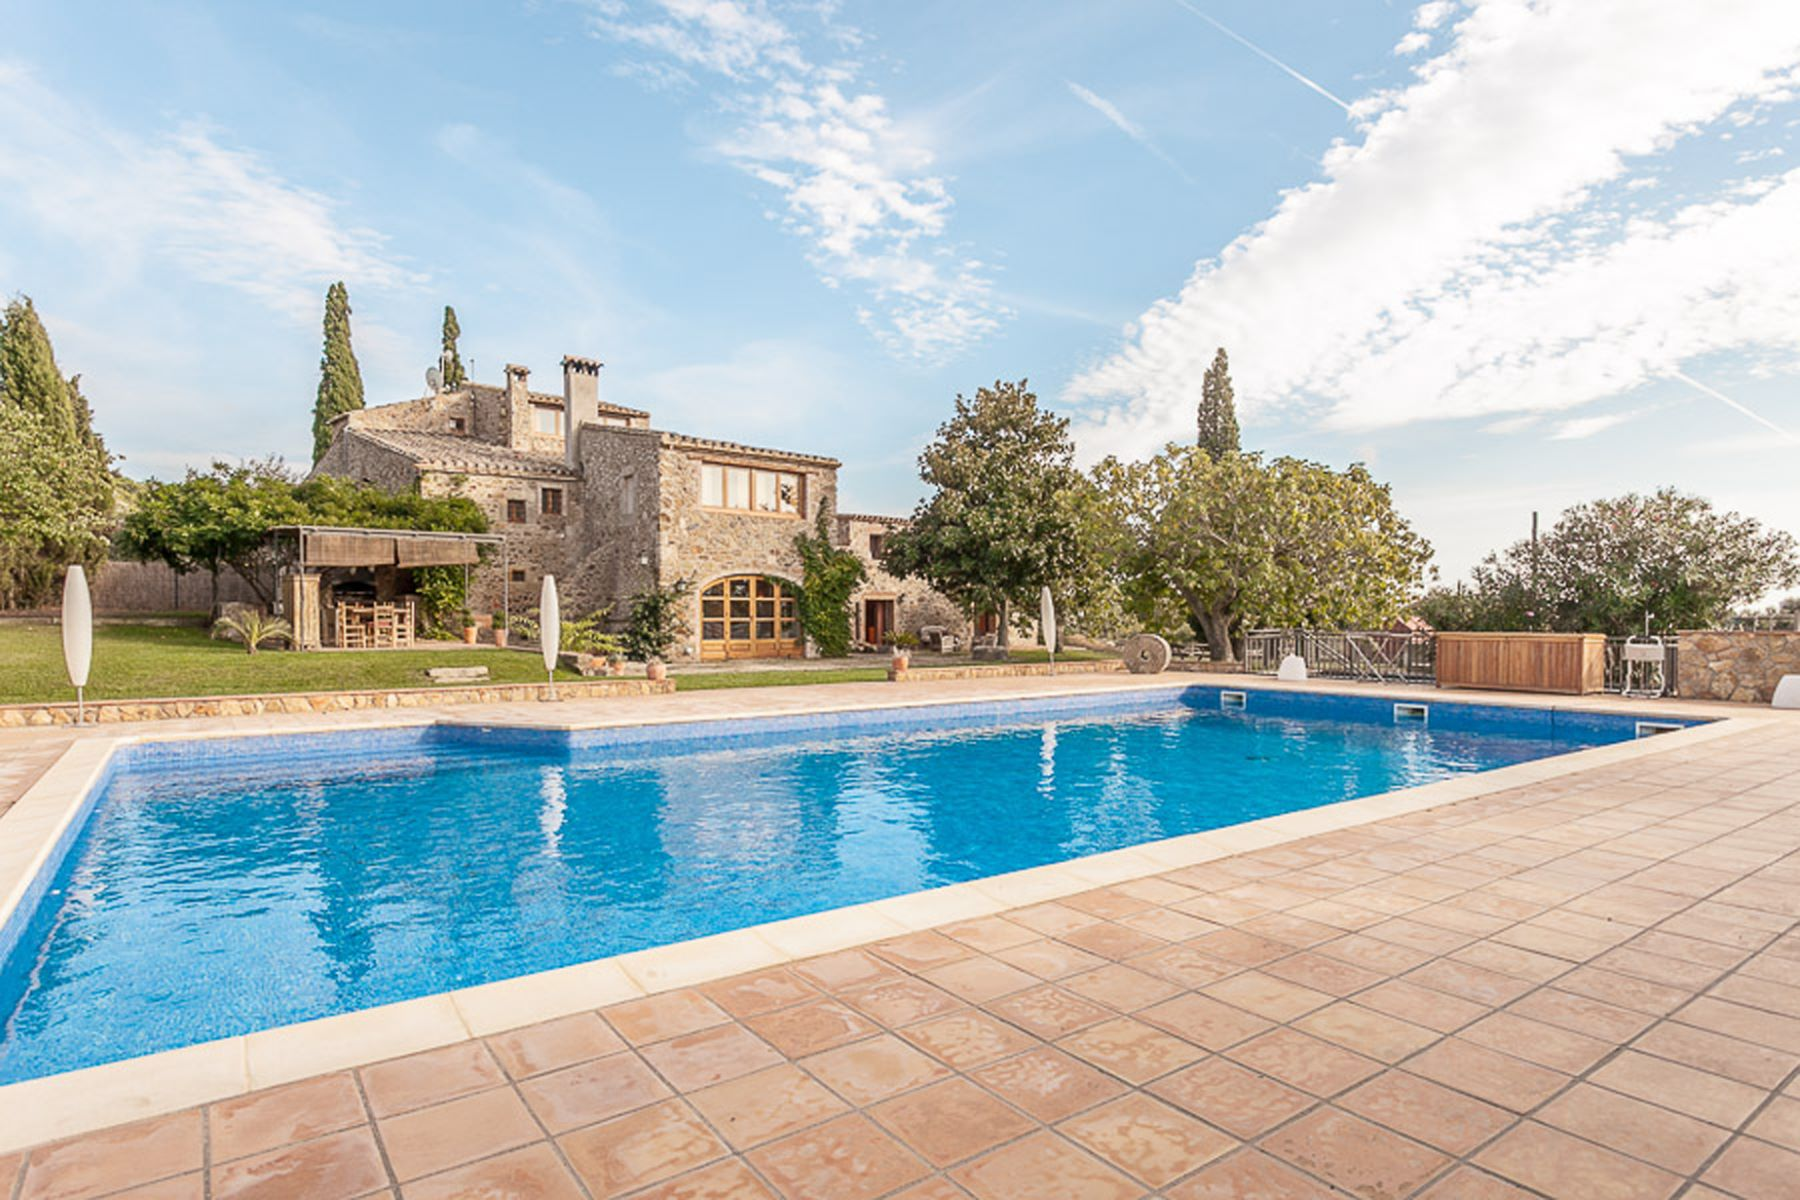 Single Family Home for Sale at Magnificent country house 2.5 km from the beach Sant Antoni De Calonge, Costa Brava, 17252 Spain